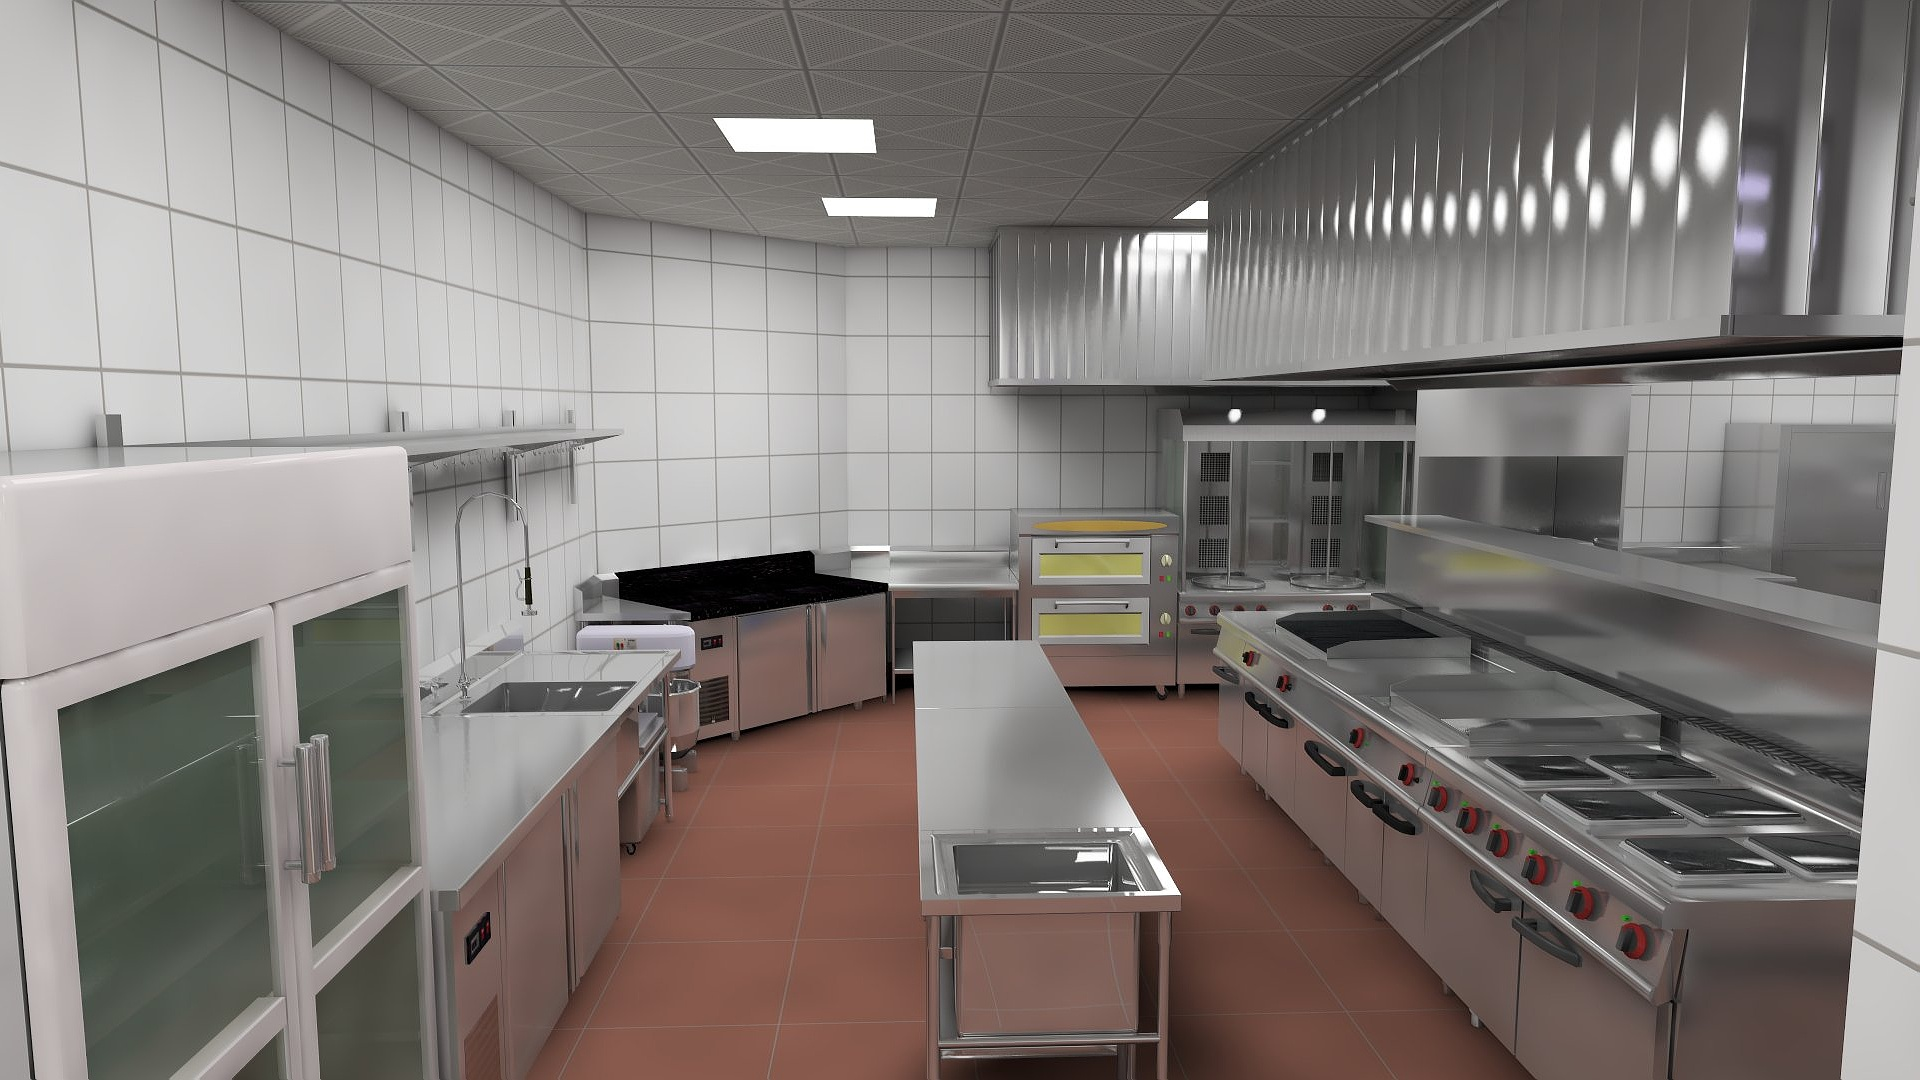 Commercial Kitchens Layout With Commercial Kitchen Equipment Design And 3d Kitchen Design In China Buy Kitchen Layout Design Commercial Kitchen Design Commercial Kitchen Equipment Product On Alibaba Com